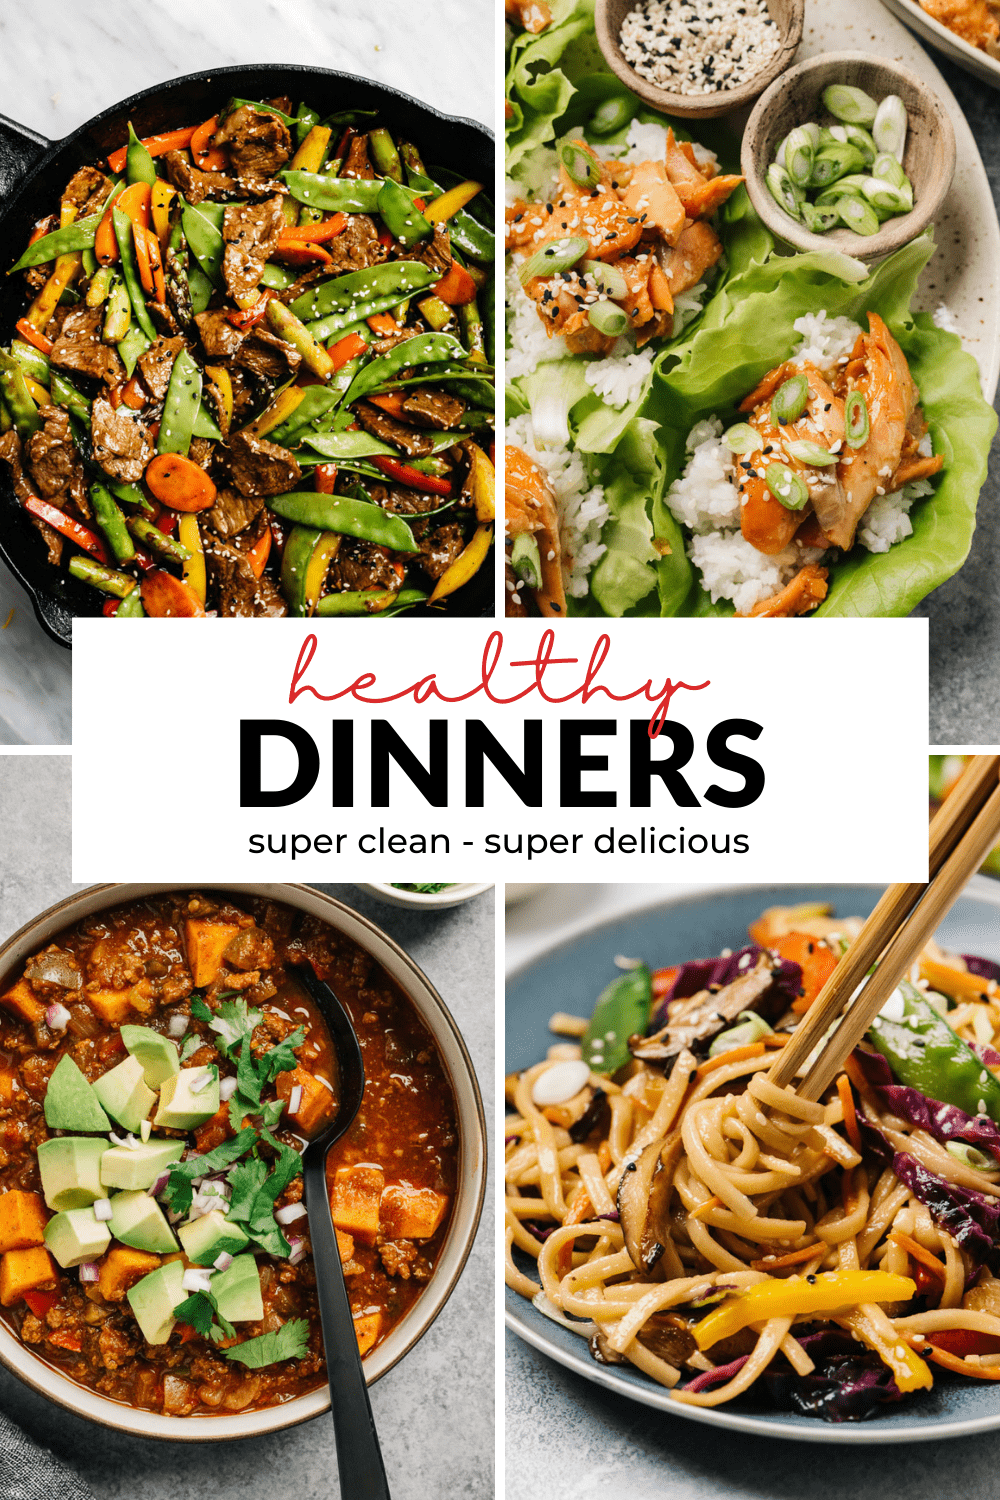 """A collage of healthy dinner recipes with a title bar in the middle that reads """"healthy dinners - super clean - super delicious""""."""